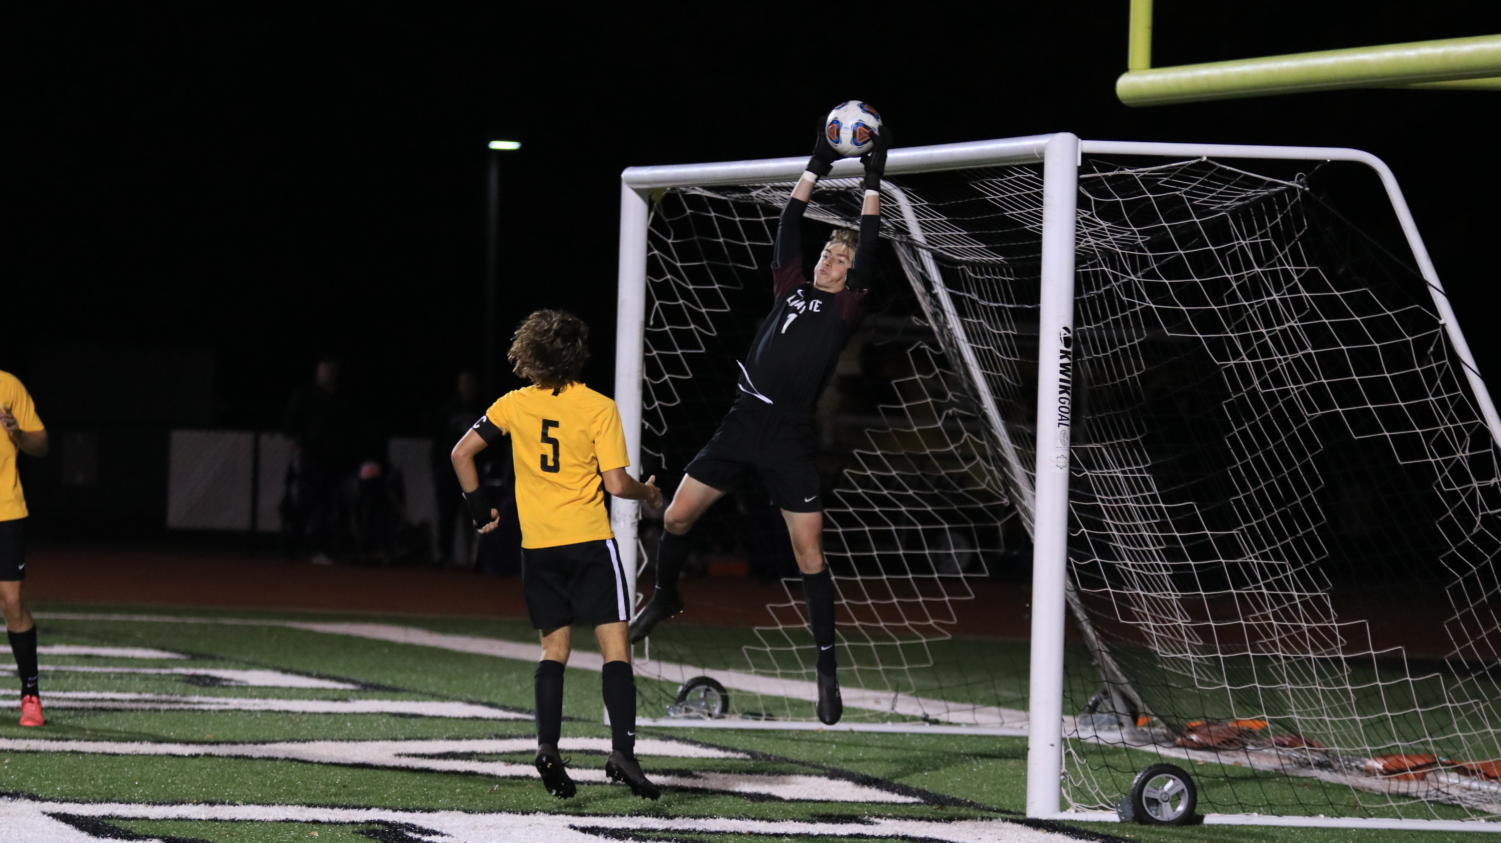 Senior+Carson+Campbell%2C+goalie%2C+leaps+into+the+air+to+catch+a+high+center+shot.+Campbell+played+without+substitution+for+80+minutes.++%0A